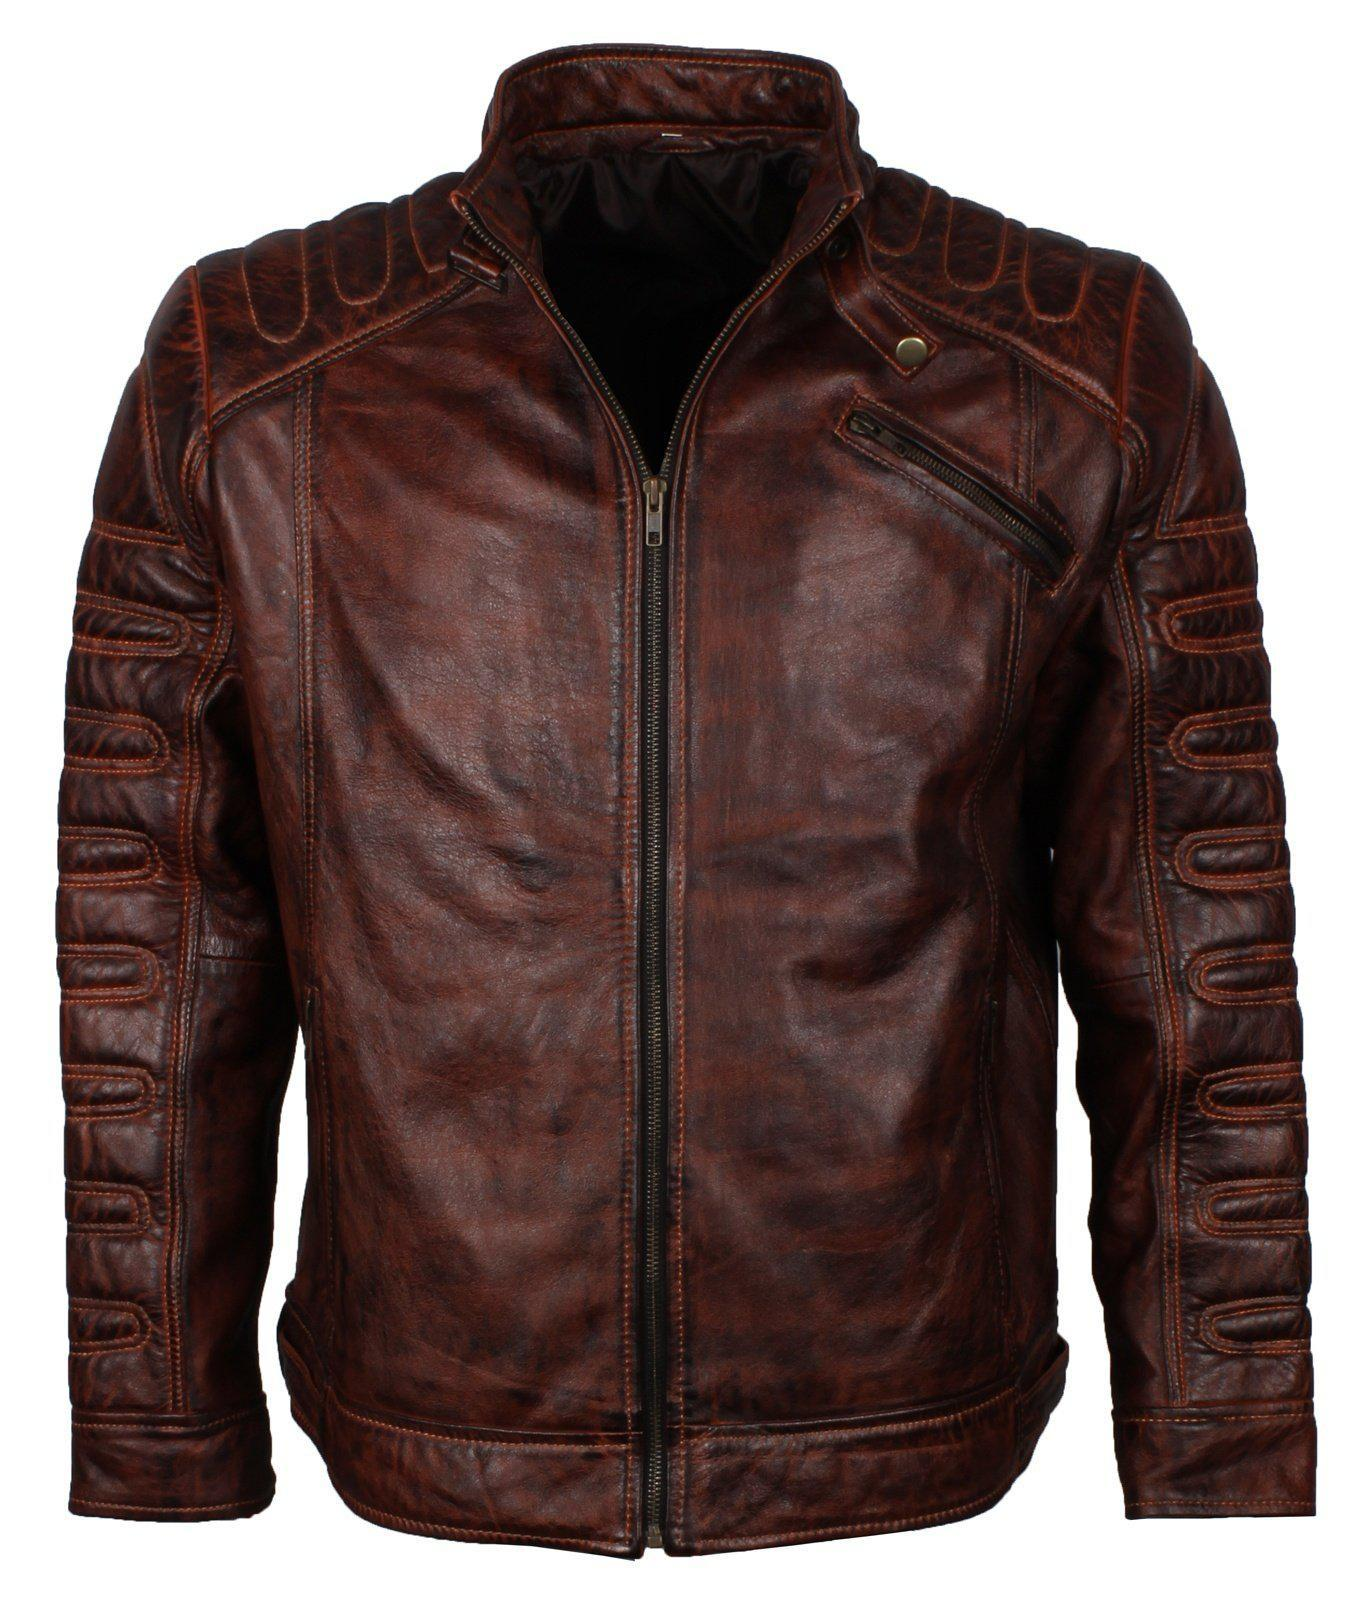 Dark Brown Waxed Leather Biker Jacket